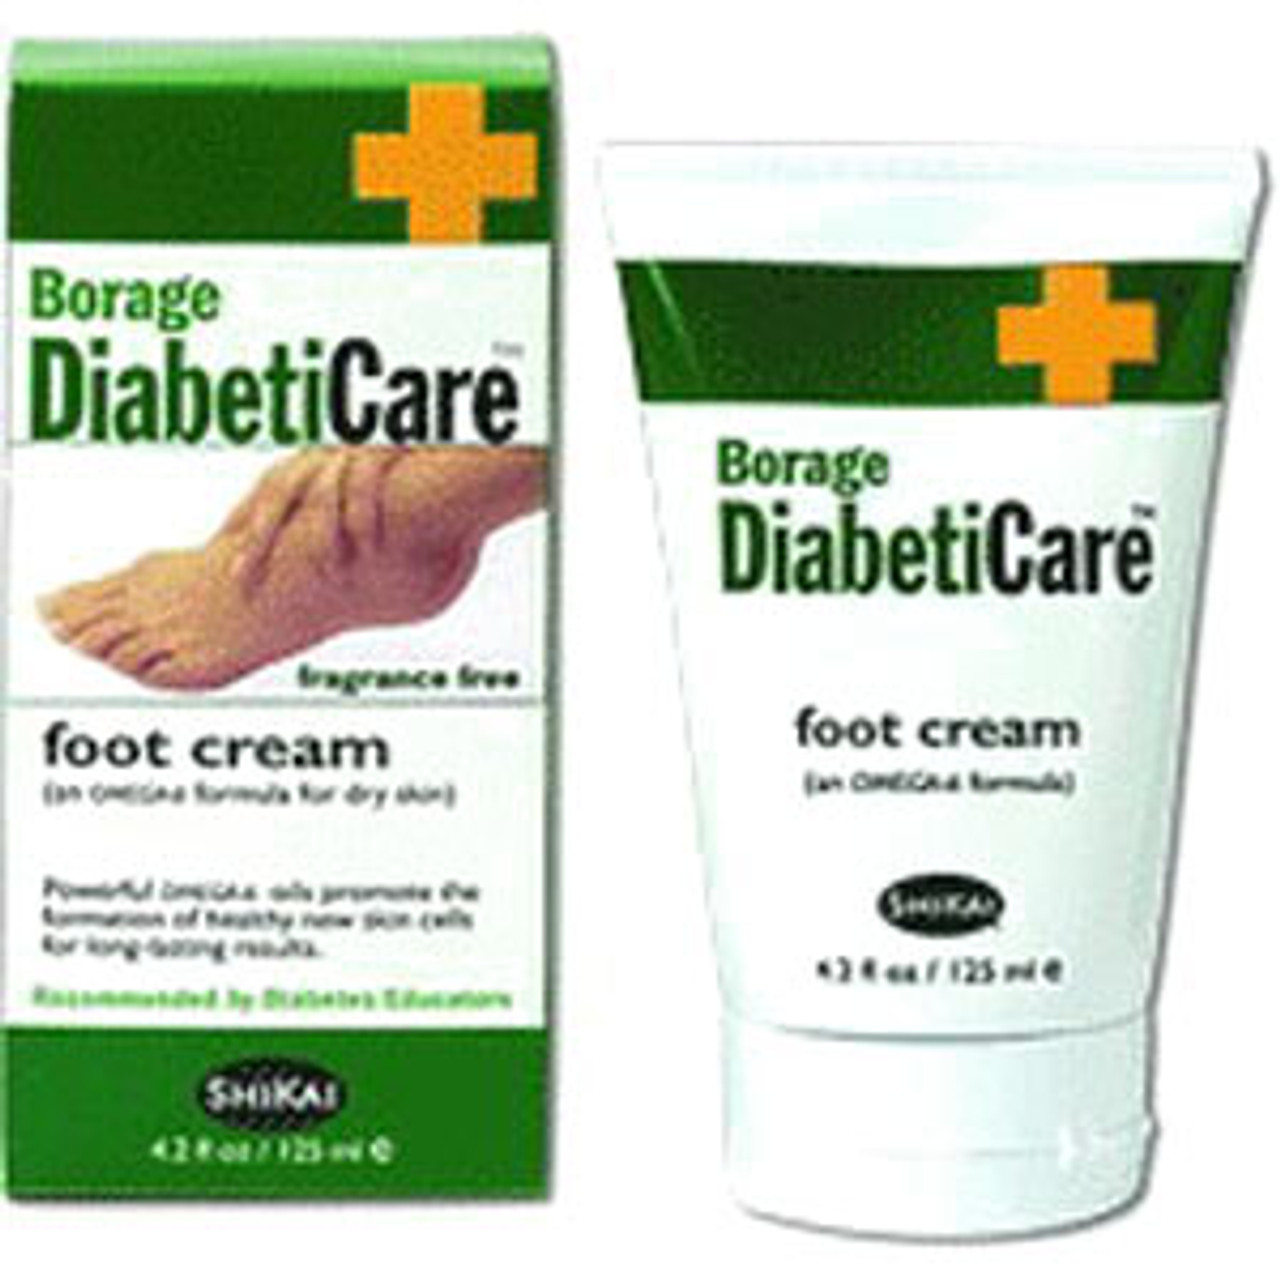 Borage Diabetic Foot Cream 4 2 Oz Tube